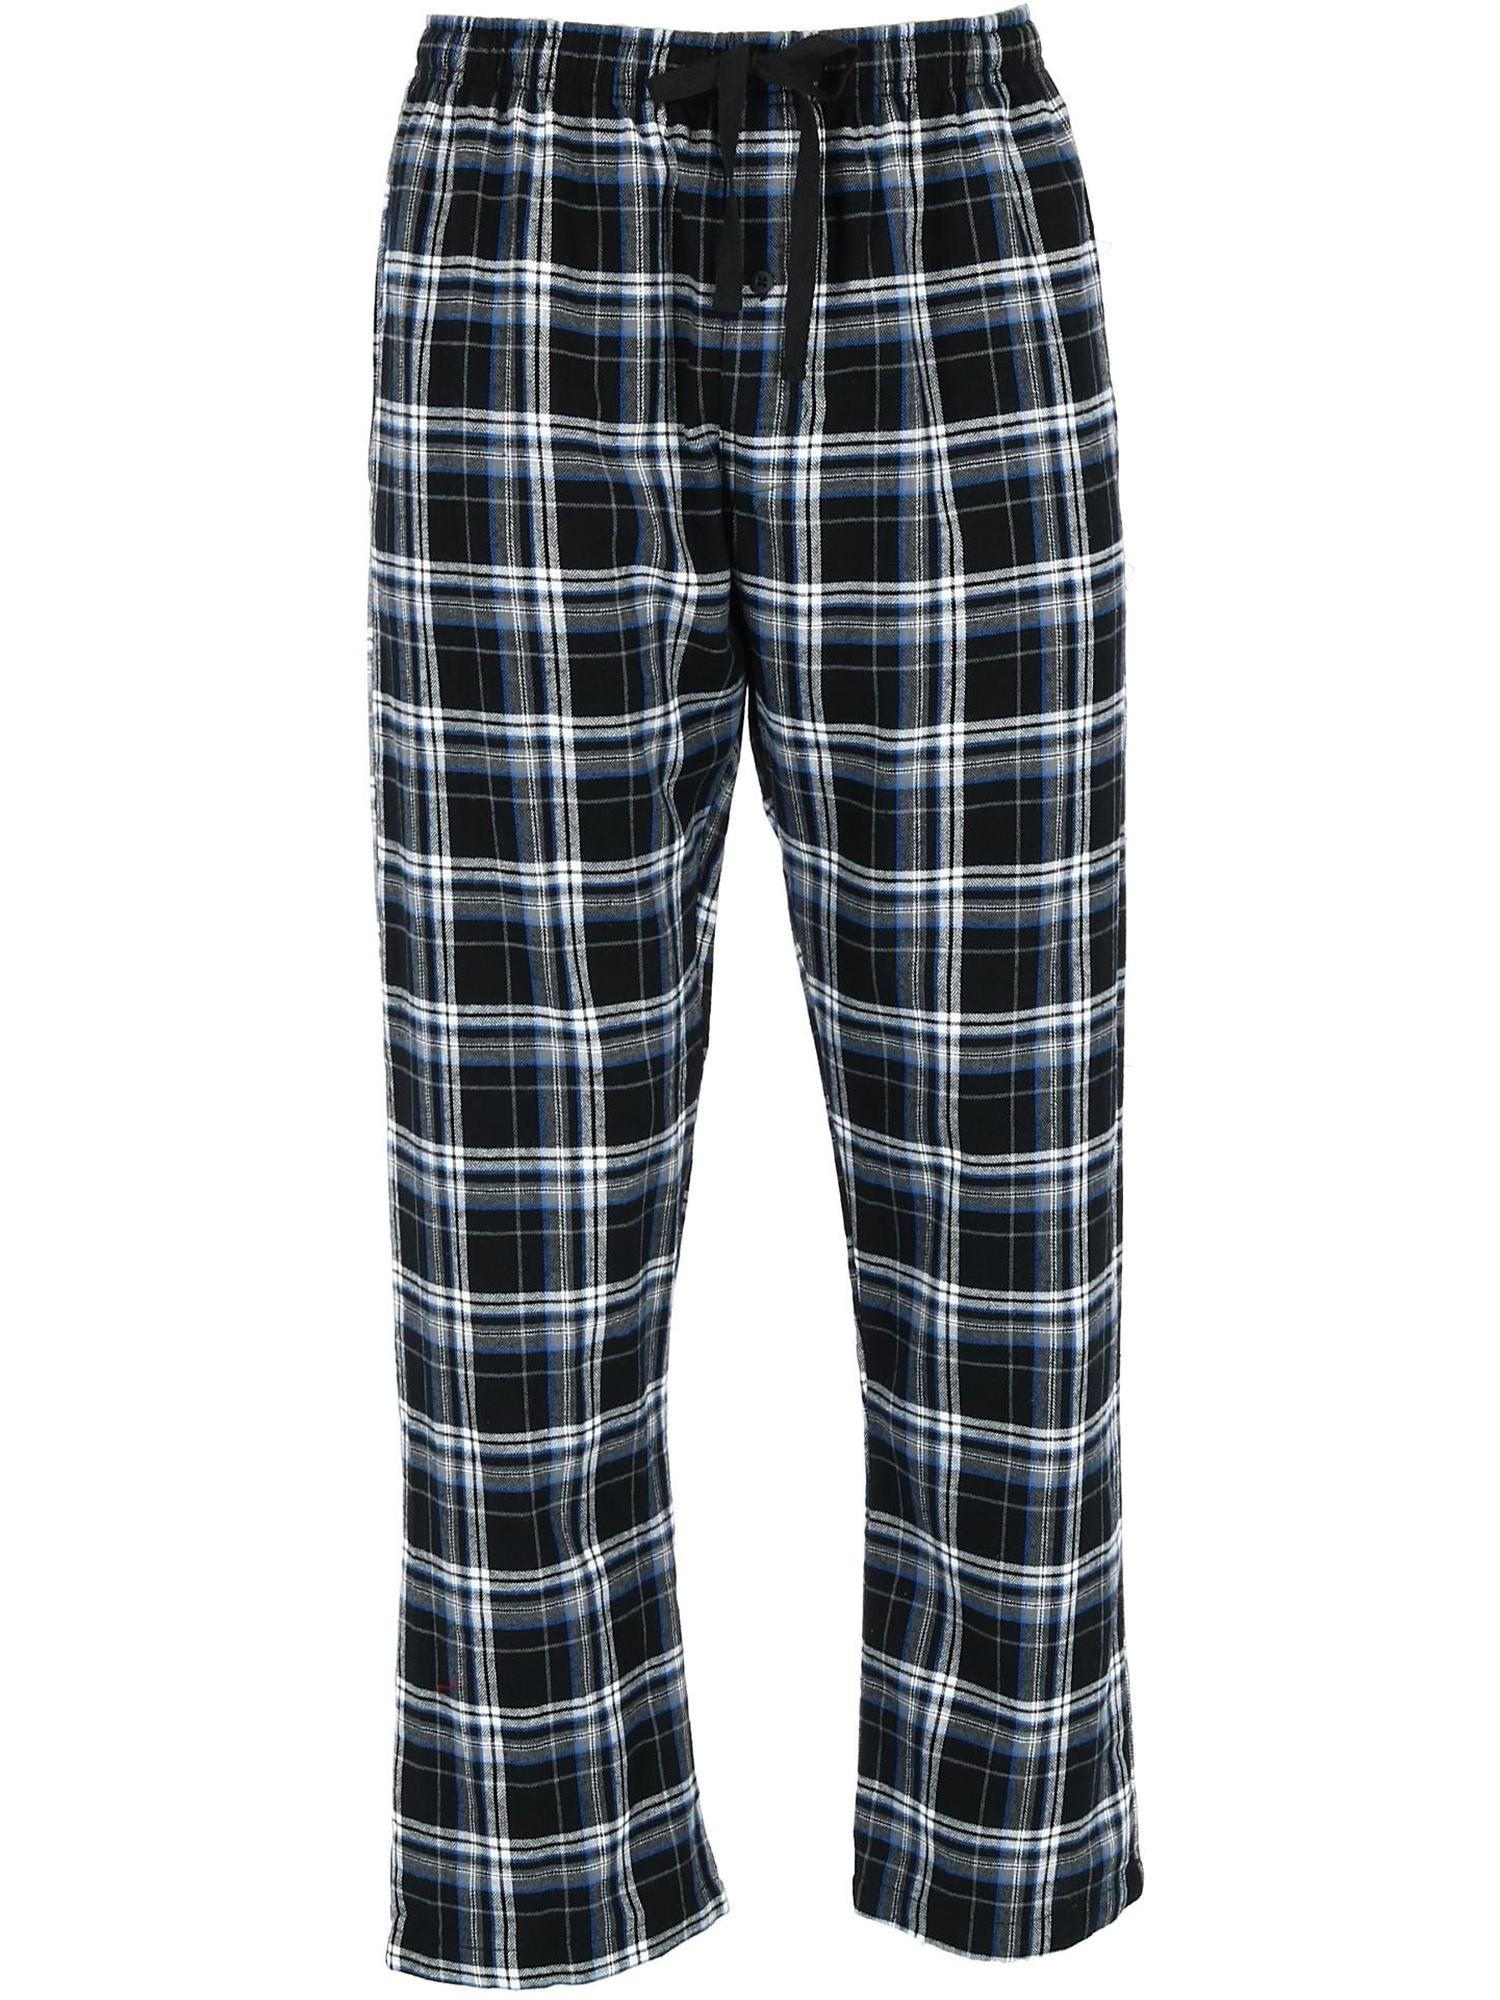 Men's Big and Tall Flannel Lounge Pajama Pants